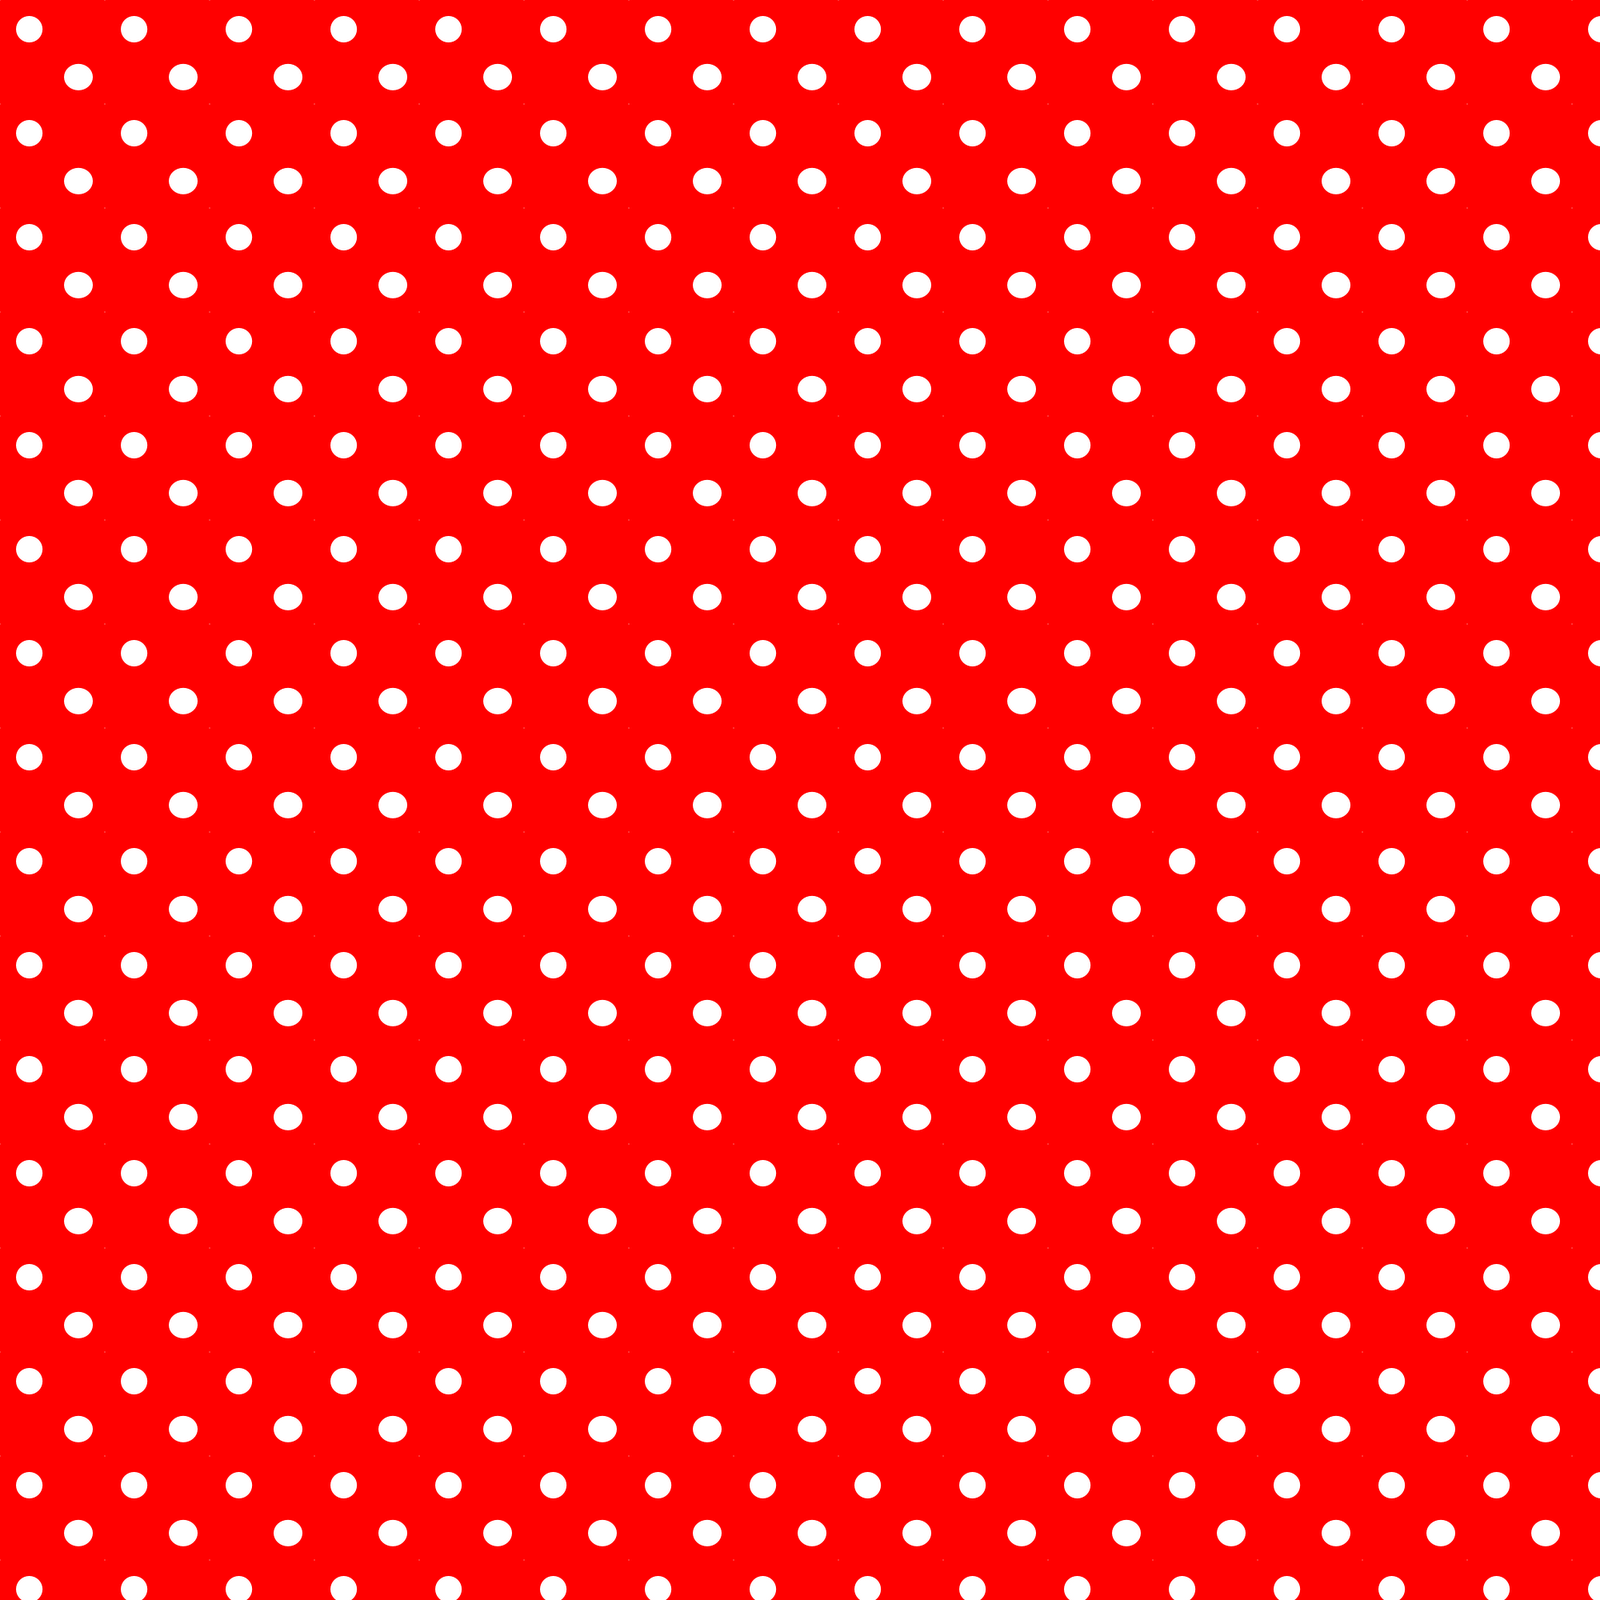 Polka Dot Background On Pinterest Digital Backgrounds Pink Backgrounds And Heather Bailey